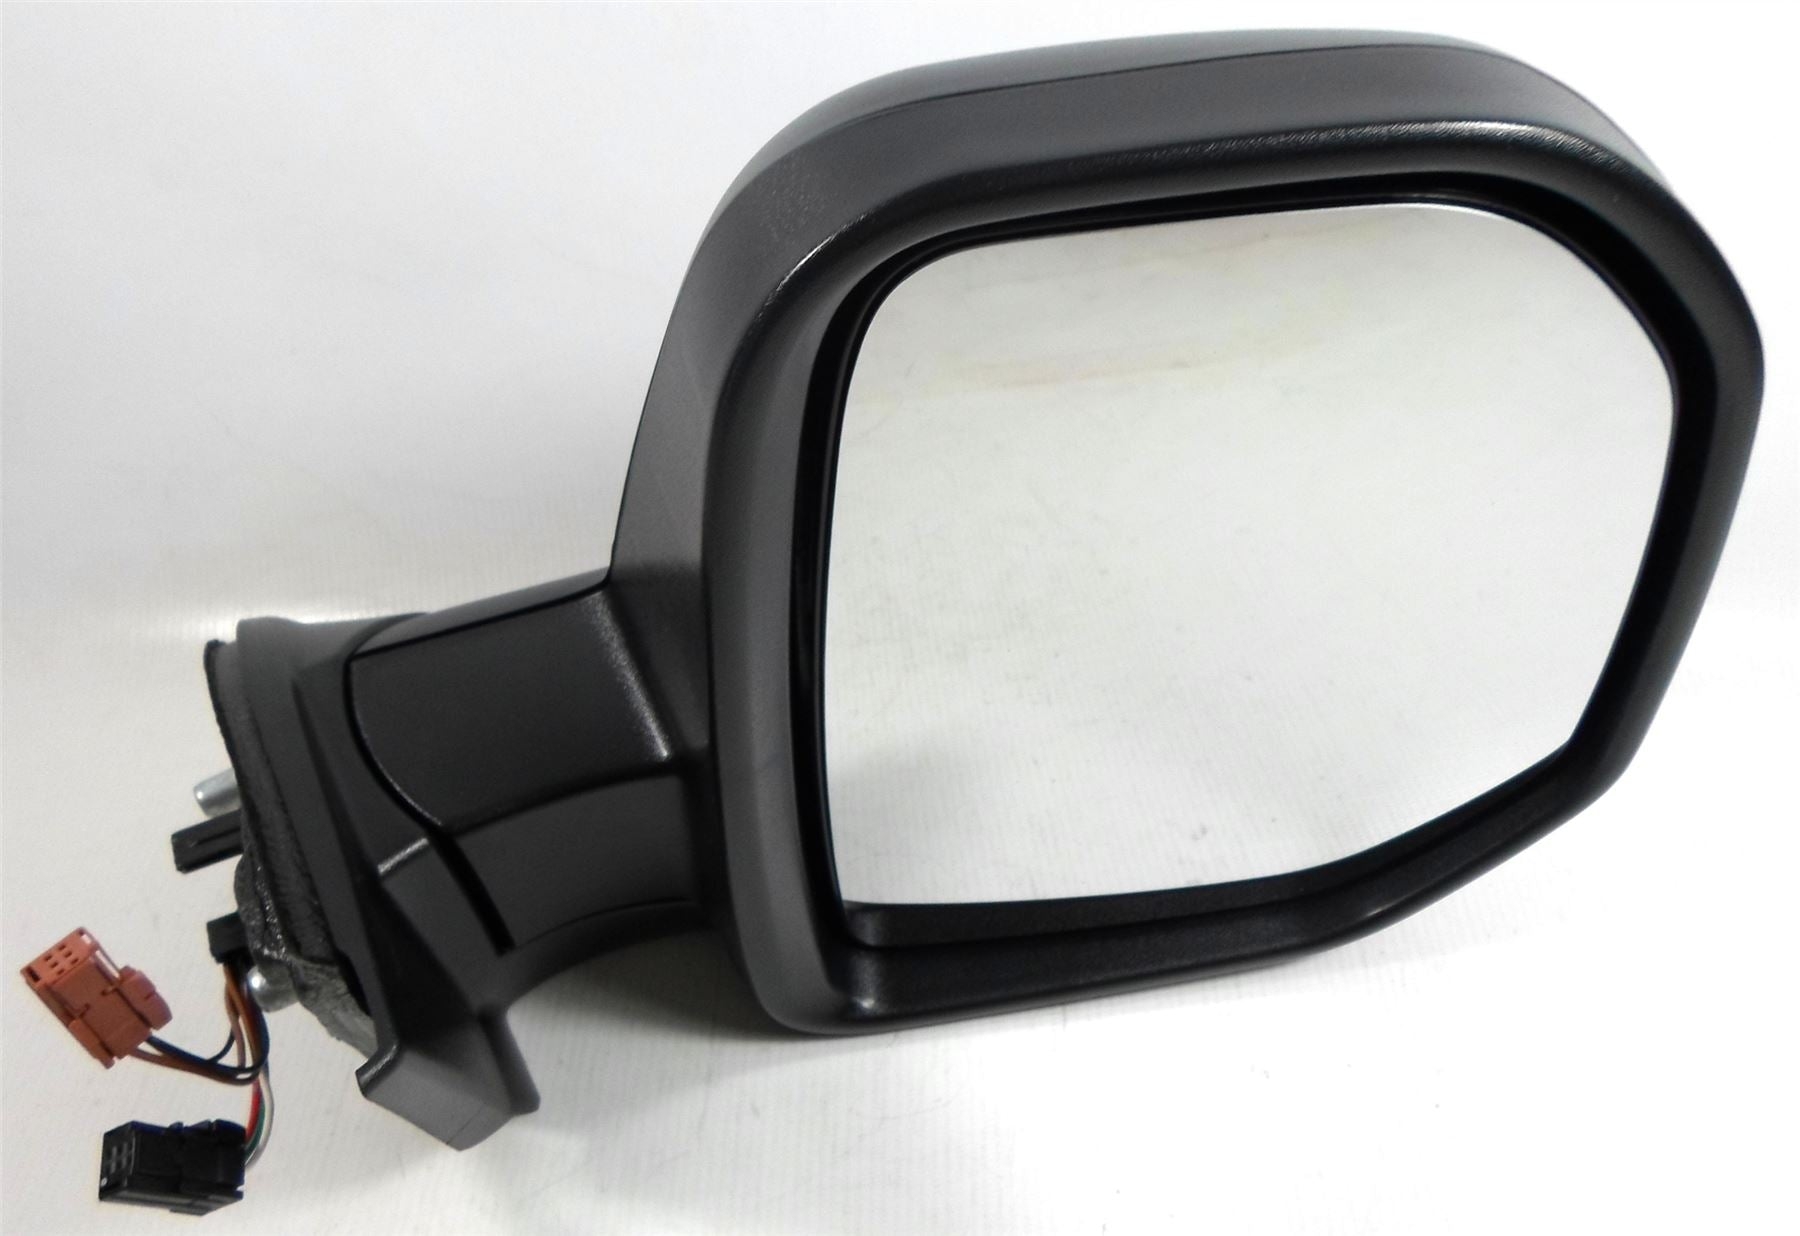 Peugeot Partner 7/08-4/2012 Electric Wing Mirror Black Temp Sensor Drivers Side